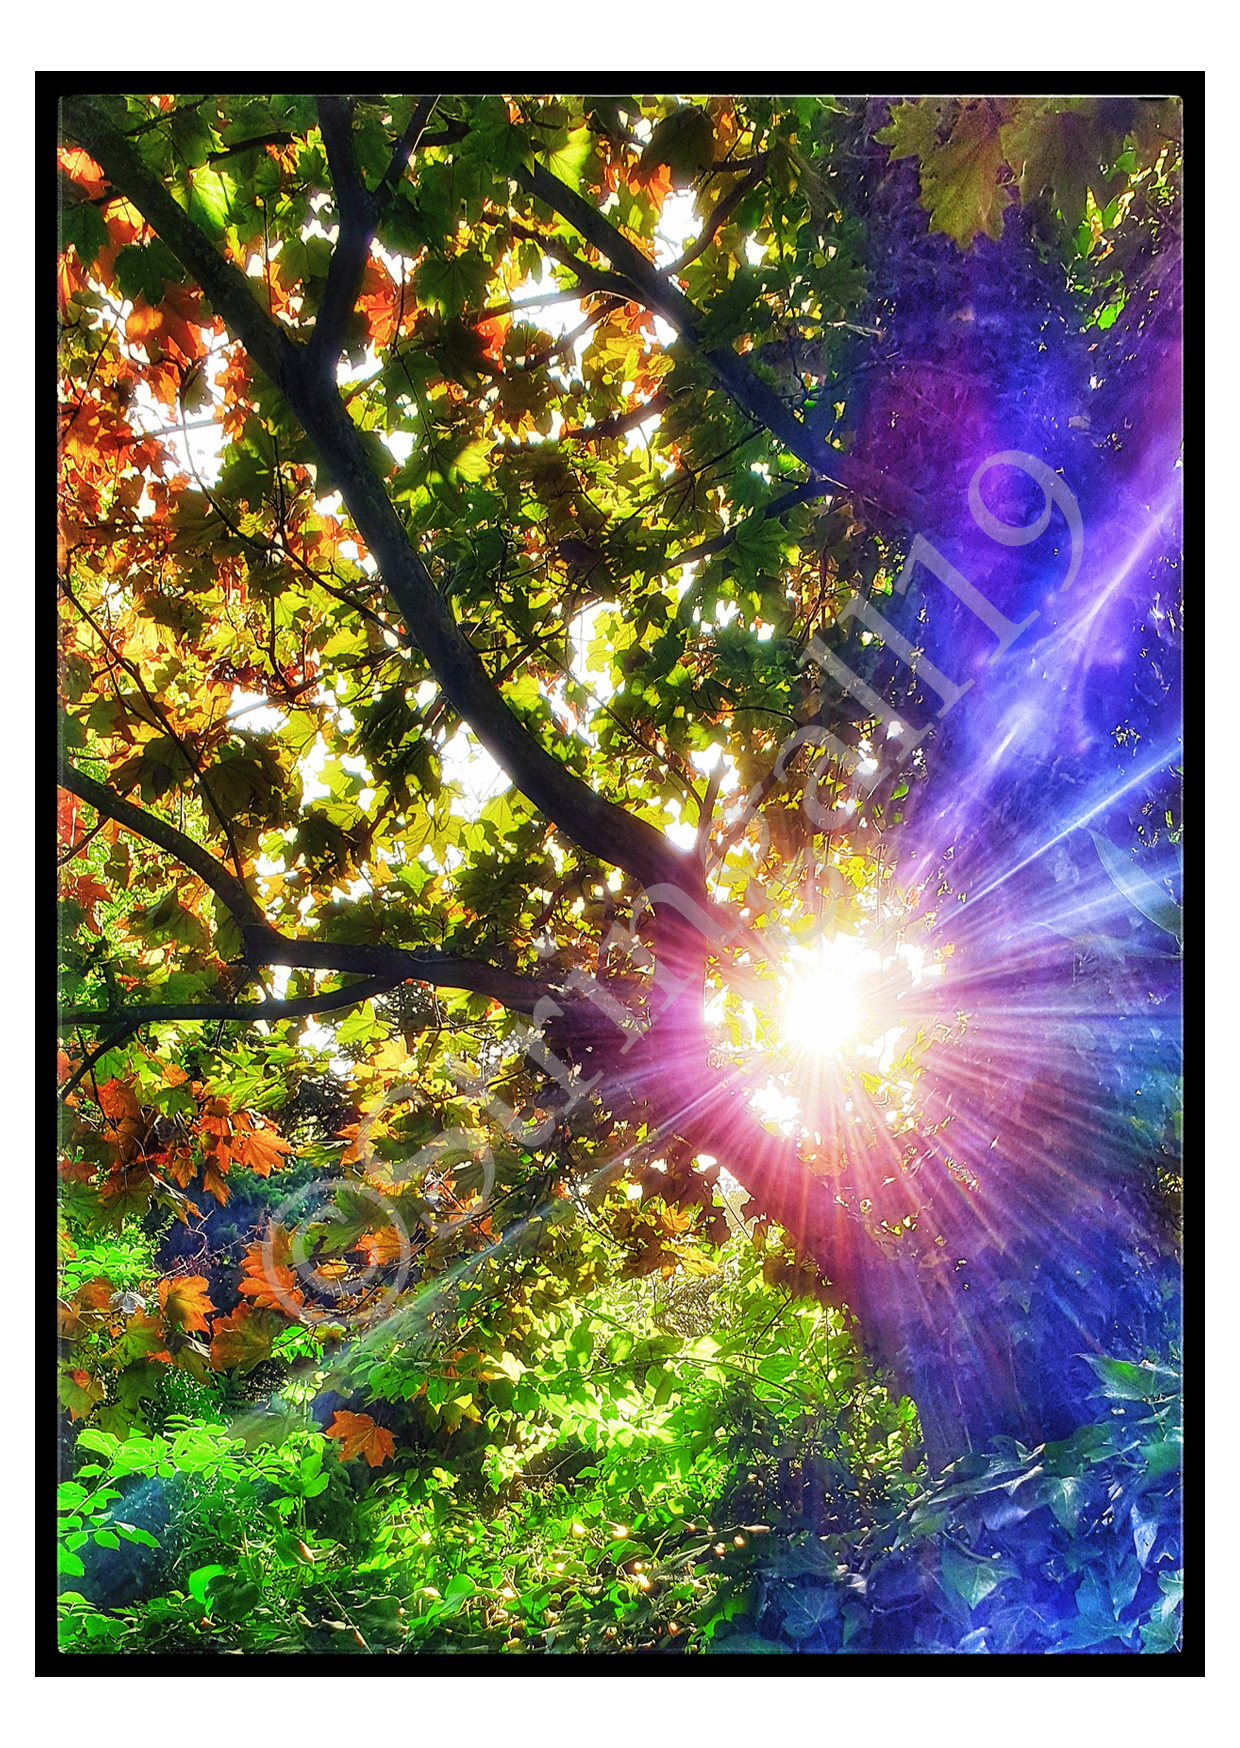 CARDS_sunrainbowtree-wm_edited-1